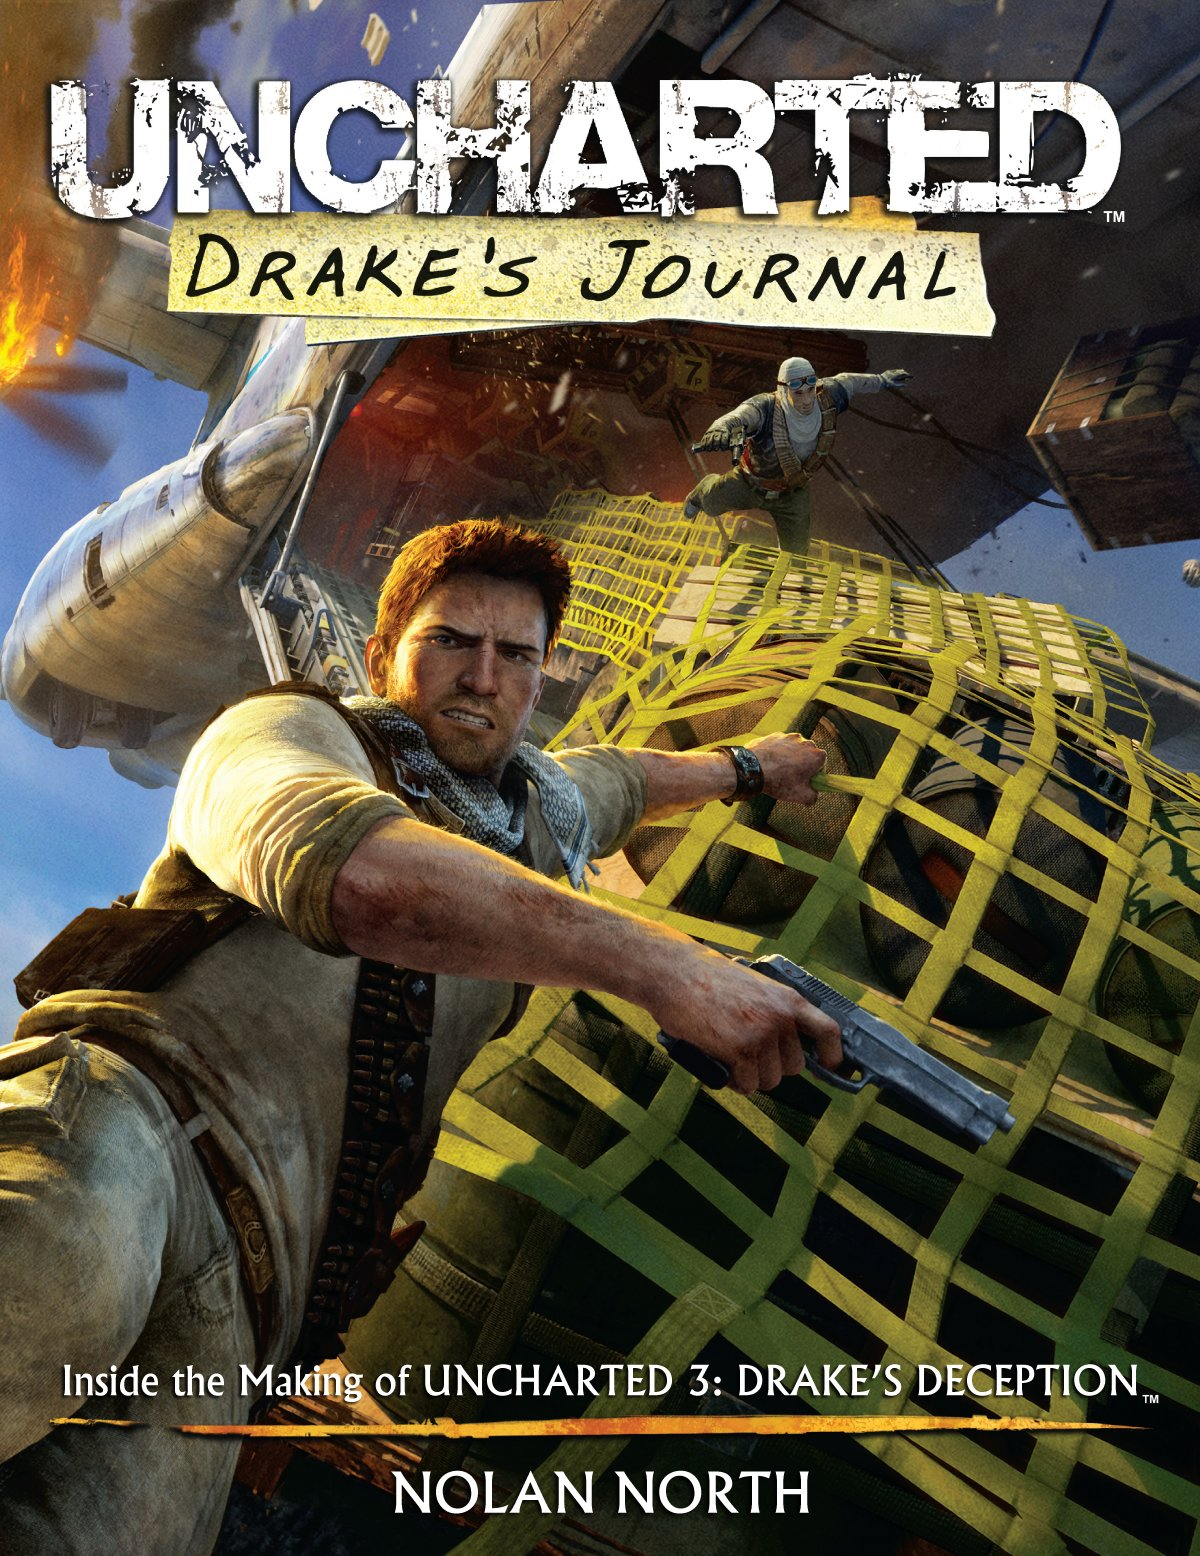 Drake S Journal Inside The Making Of Uncharted 3 North Nolan